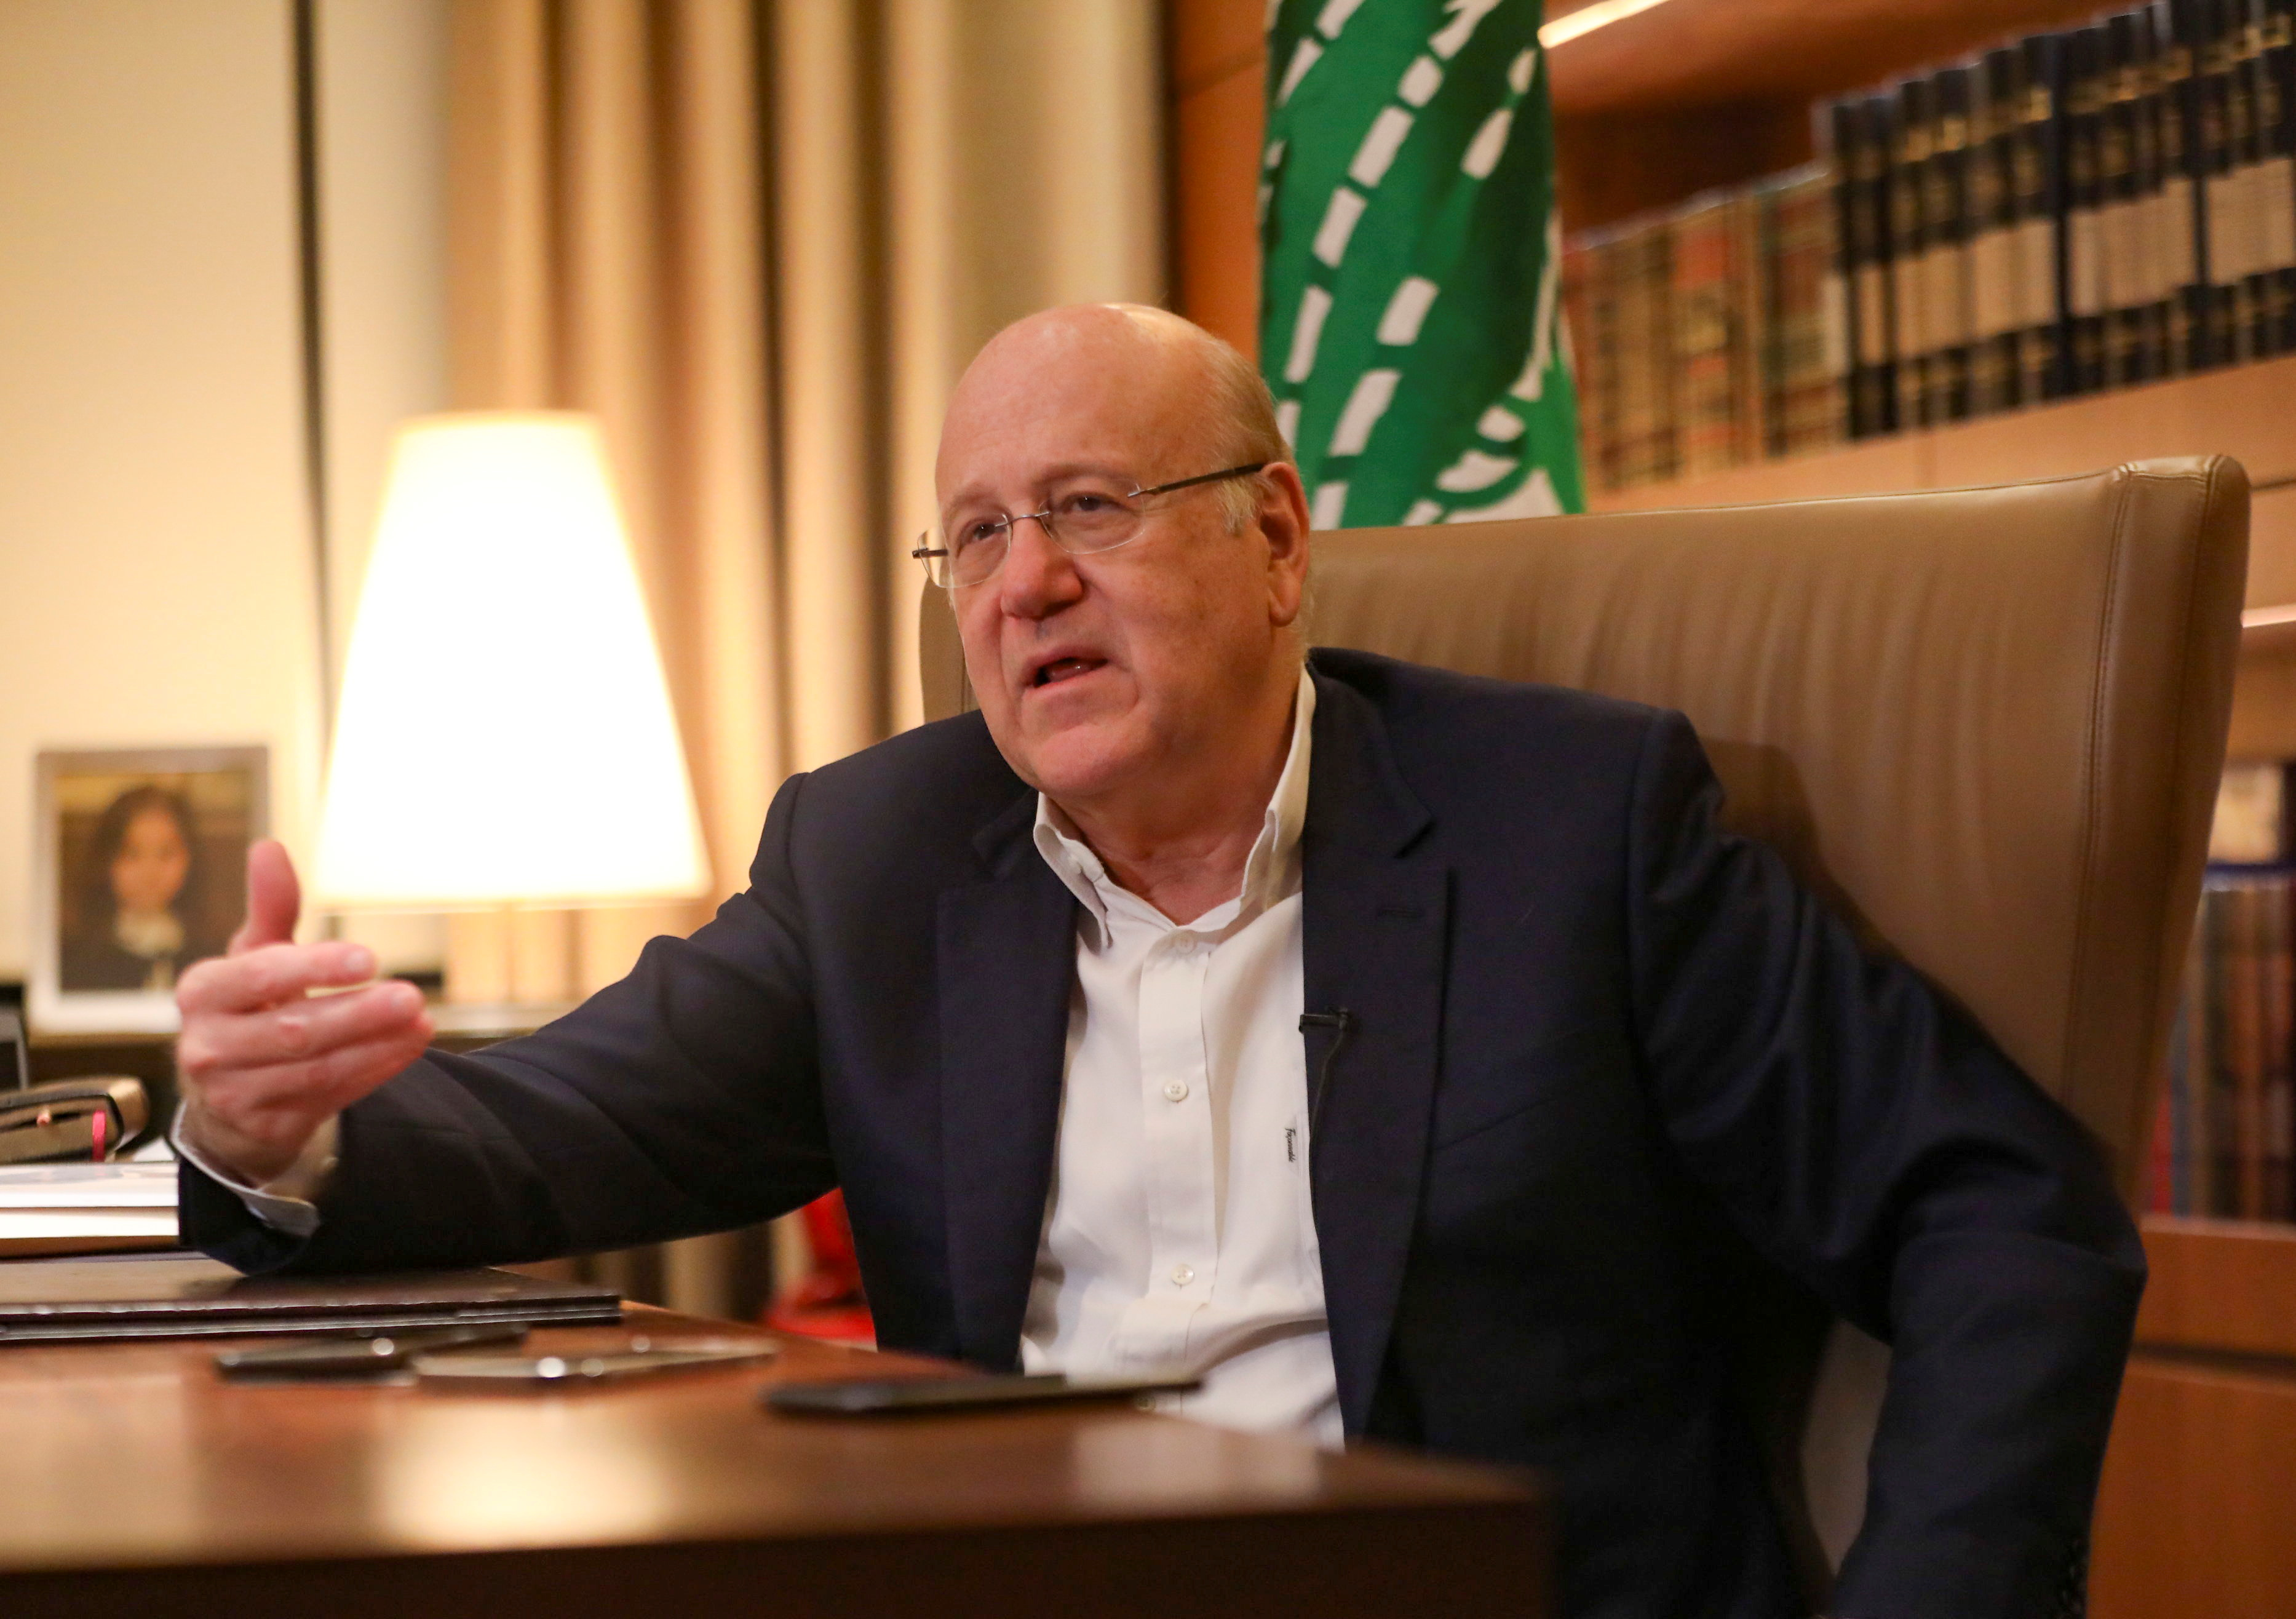 Lebanese Prime Minister Najib Mikati speaks during an interview with Reuters at the government palace in Beirut, Lebanon October 14, 2021. REUTERS/Mohamed Azakir